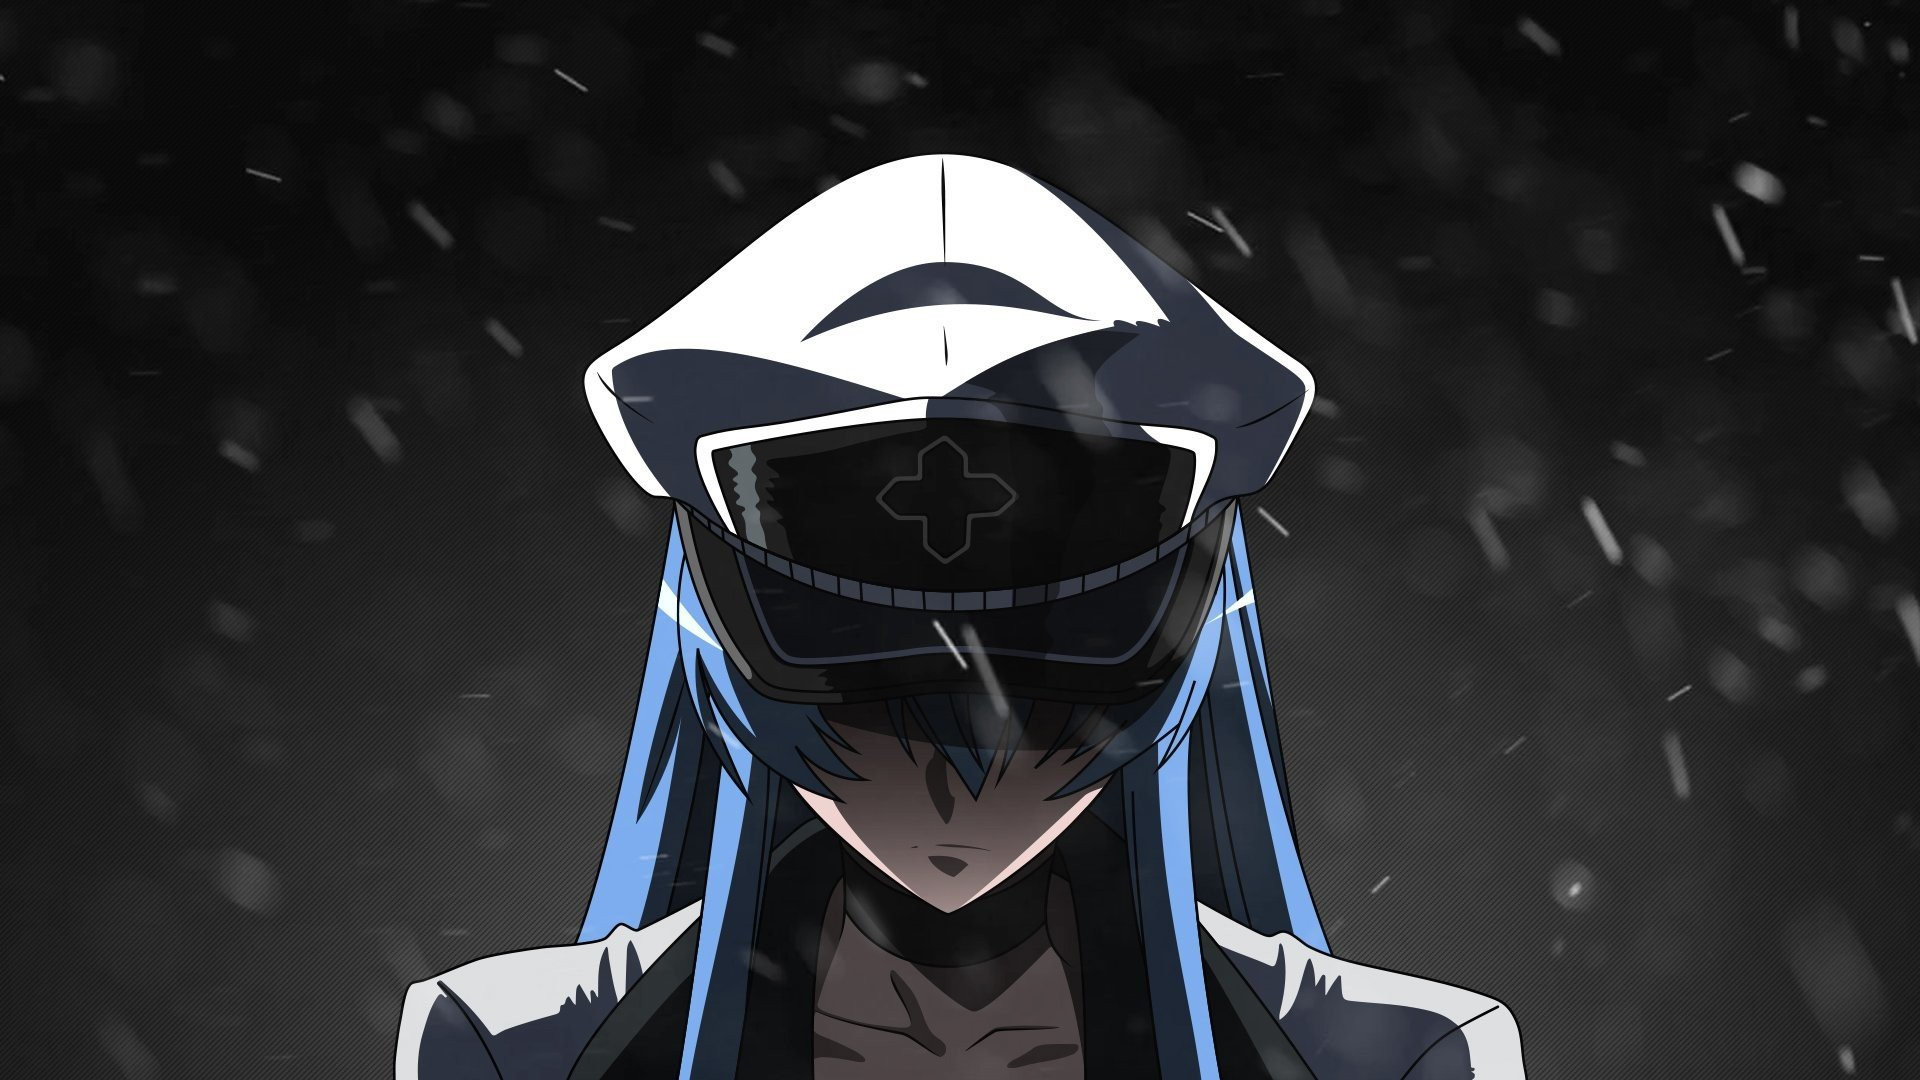 Akame Ga Kill Anime Girls Esdeath Hd Wallpapers Desktop And